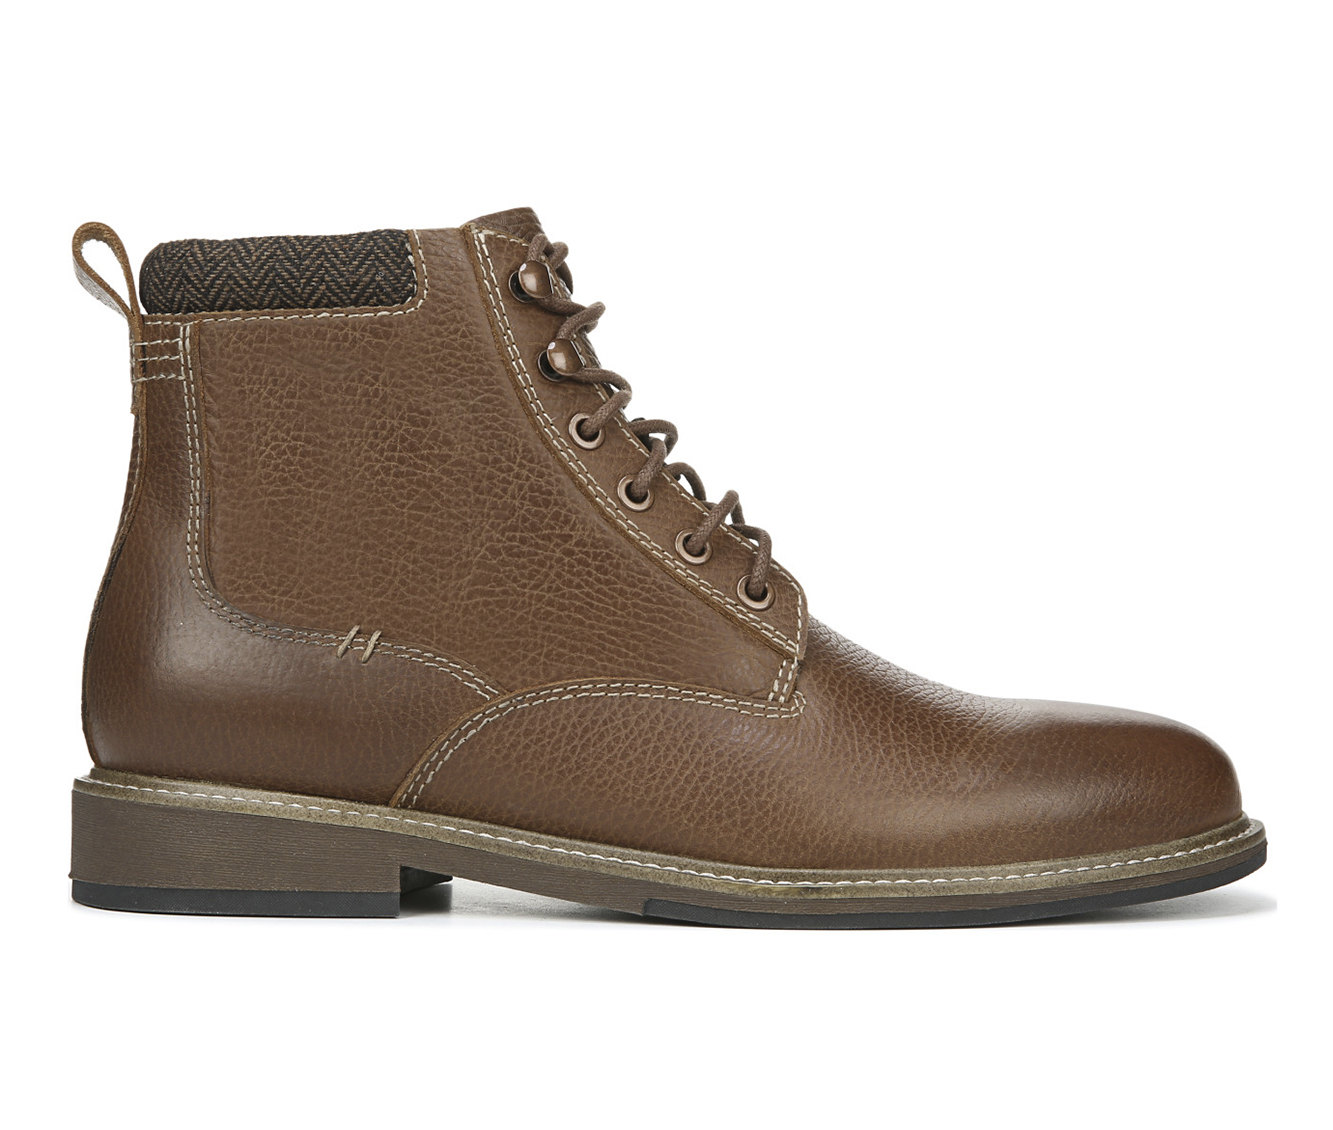 Dr. Scholls Chief Men's Boots (Brown Leather)